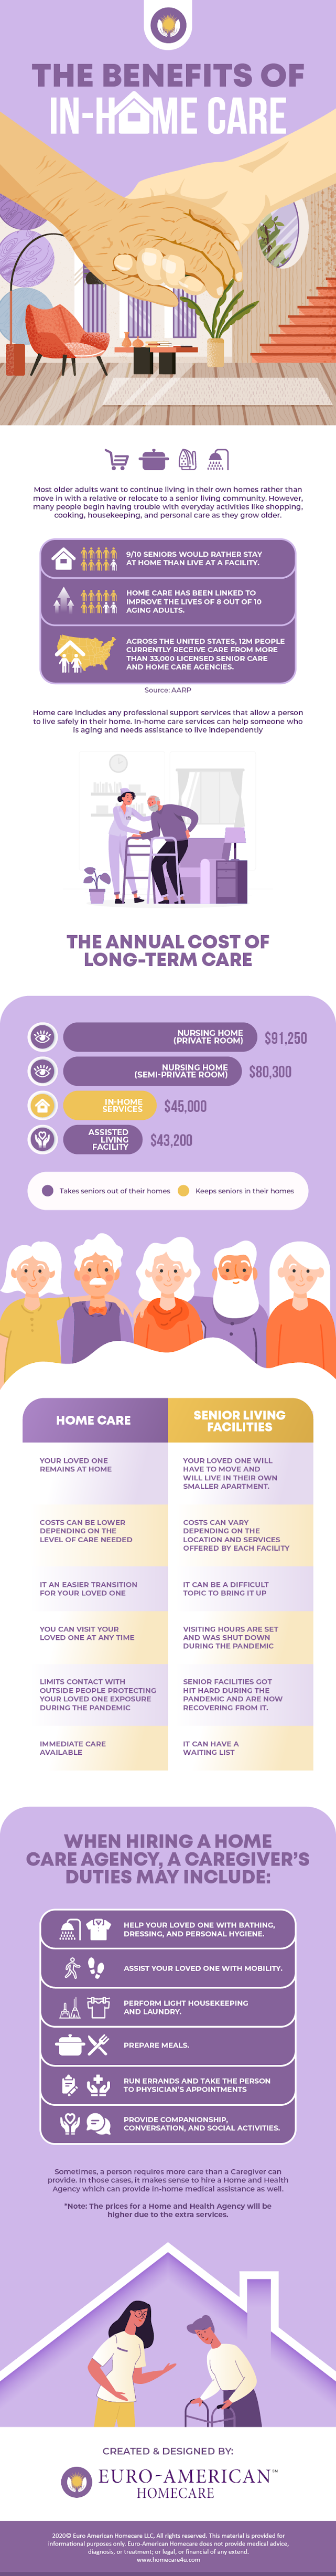 The Benefits of In-Home Care #infographic #Healthcare #Benefits #infographics #Home Care